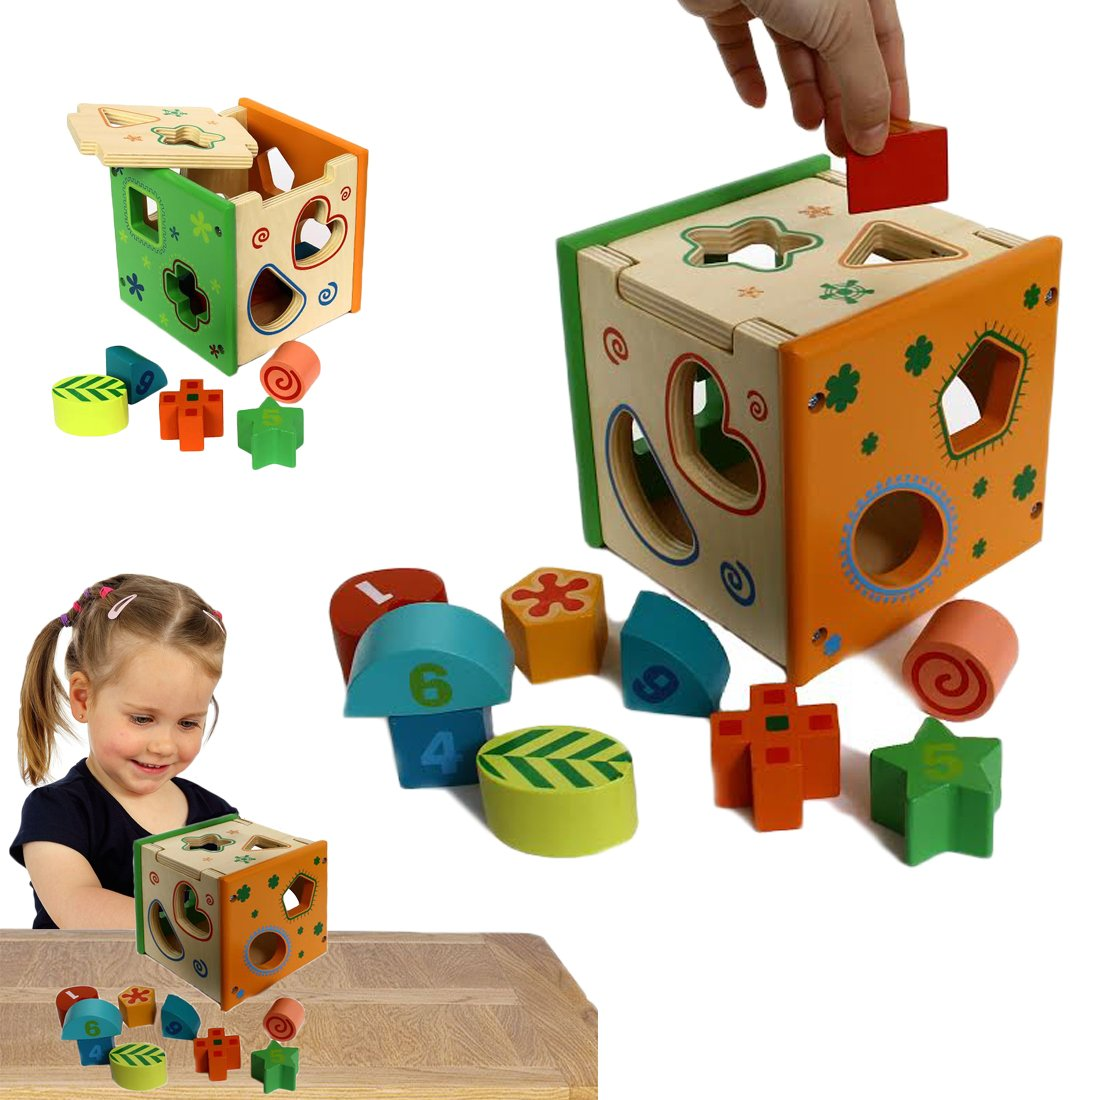 Wooden Shape Sorting Cube, Educational Toy for Children, 9 Geometric Shape Blocks, Double-Sided Assorted Color Pieces with Number / Design, by Dazzling Toys